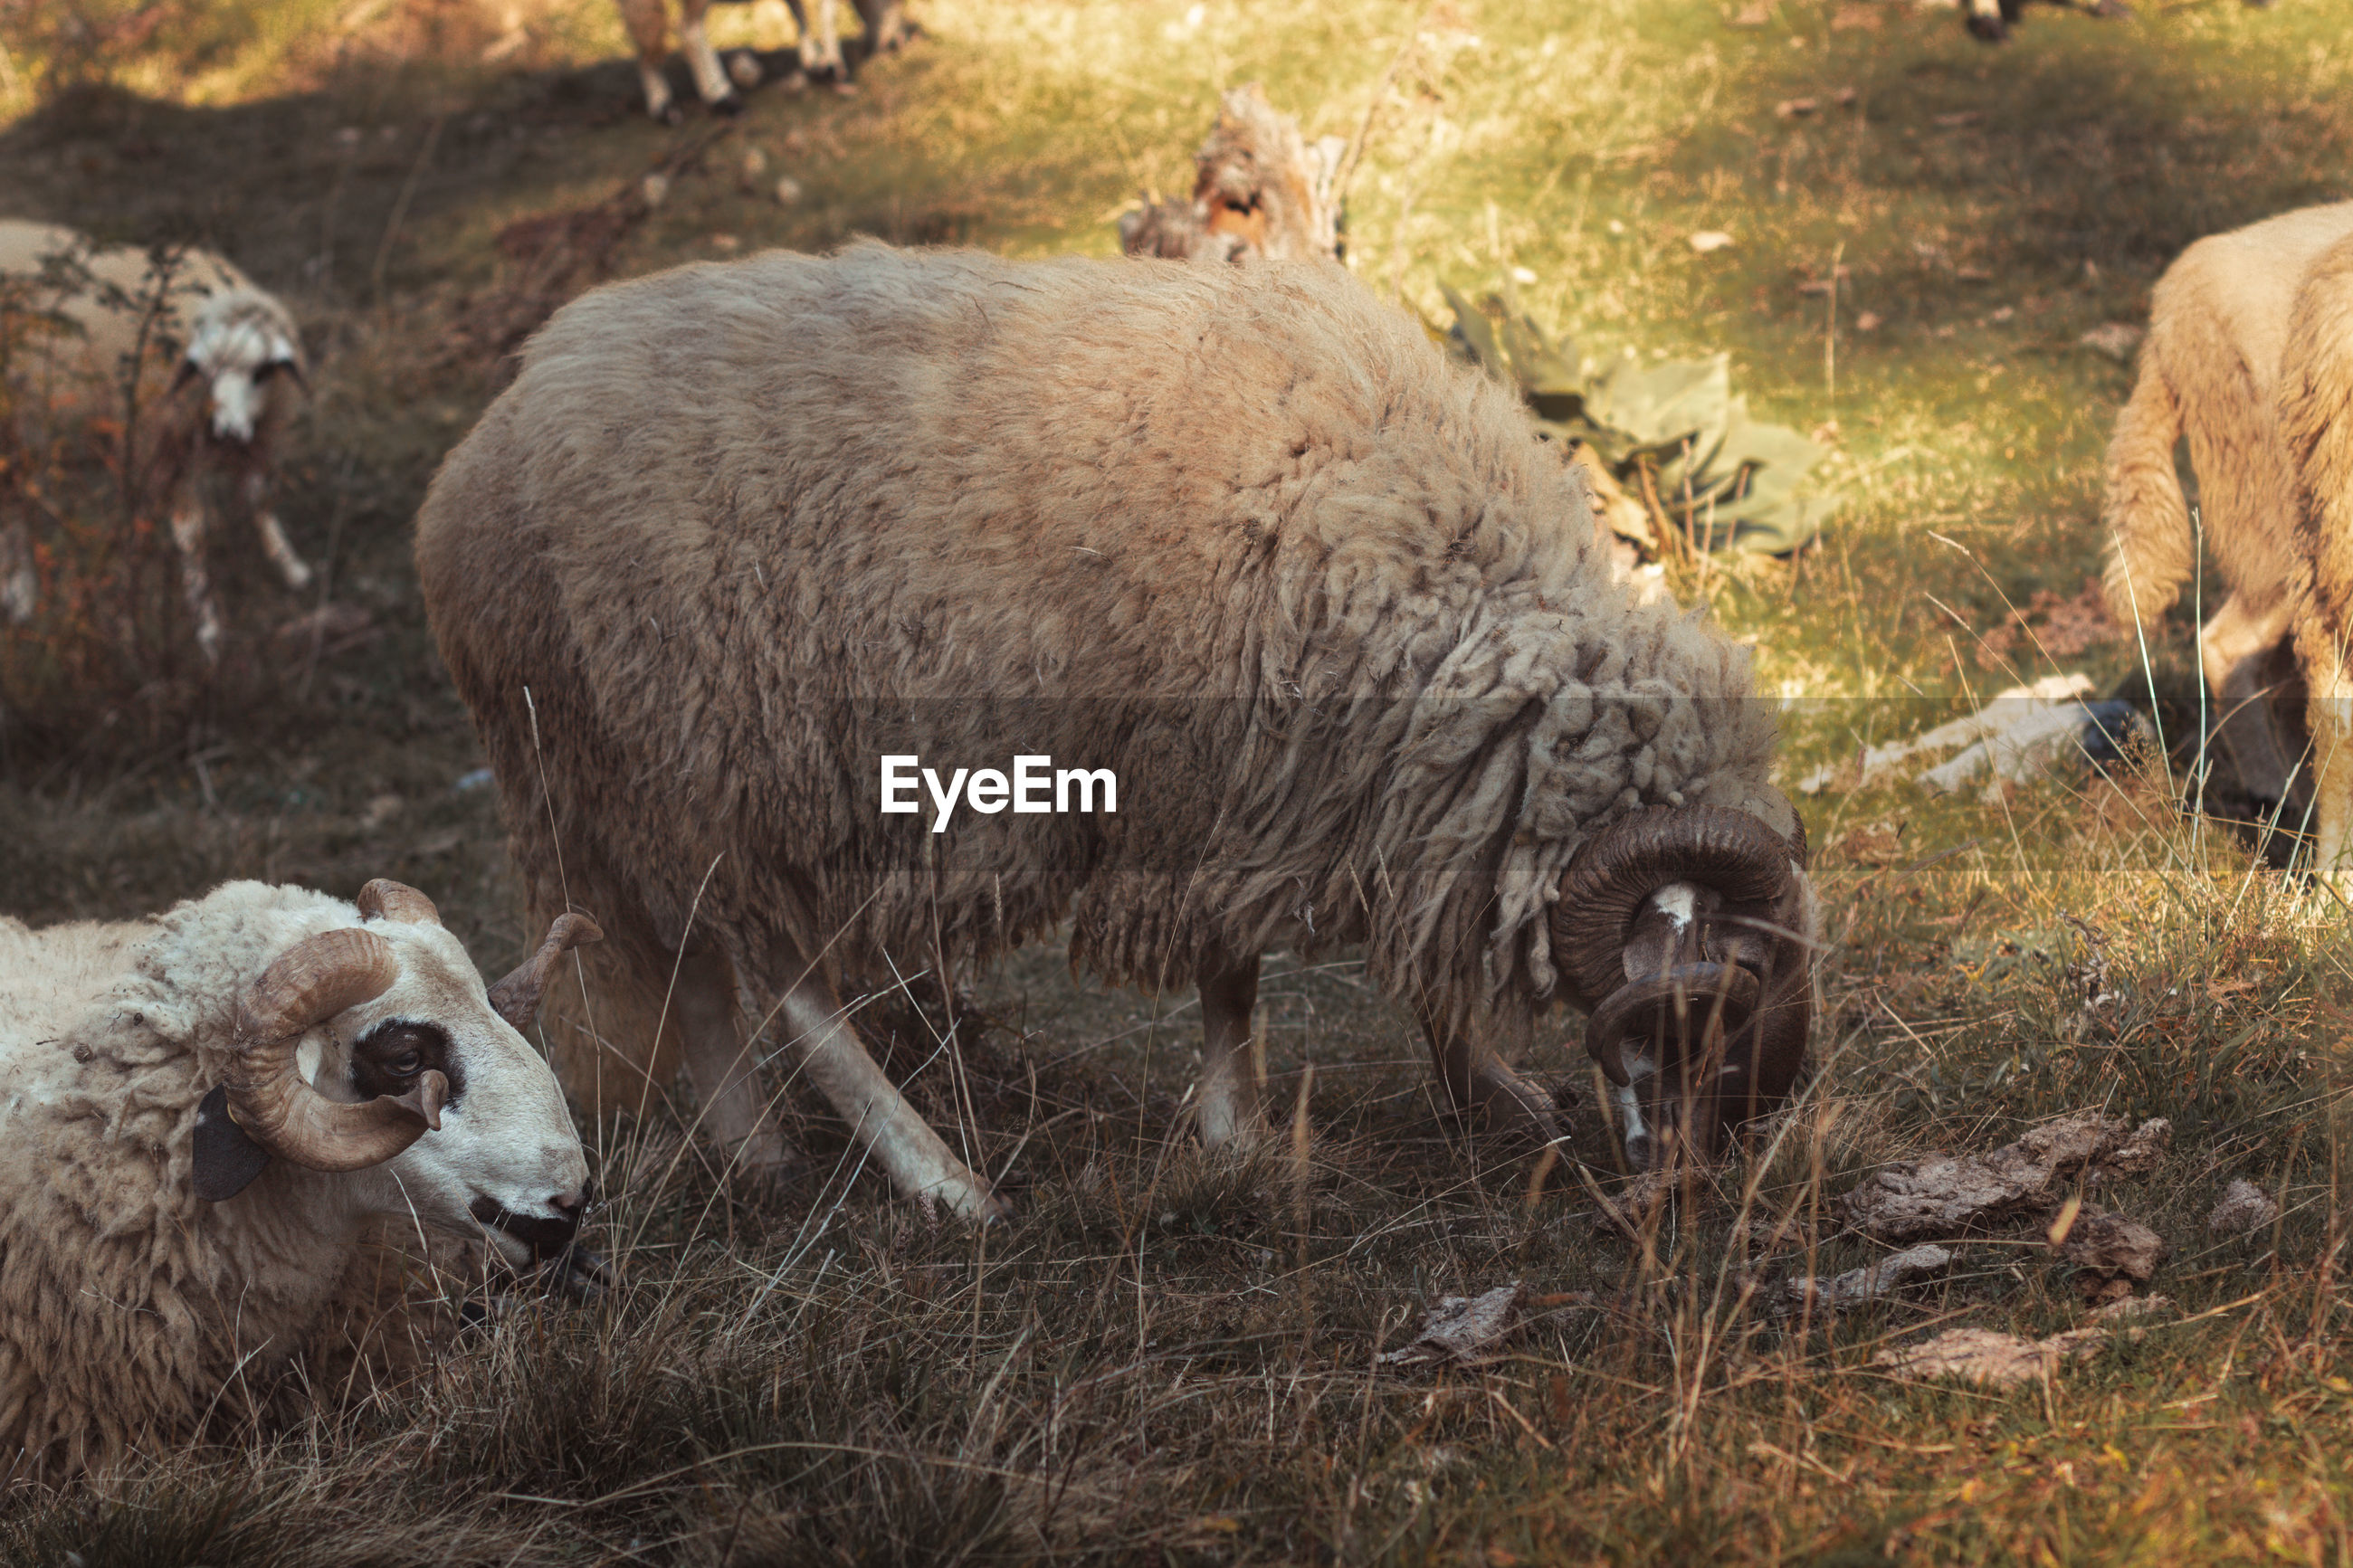 SHEEP IN A ANIMAL